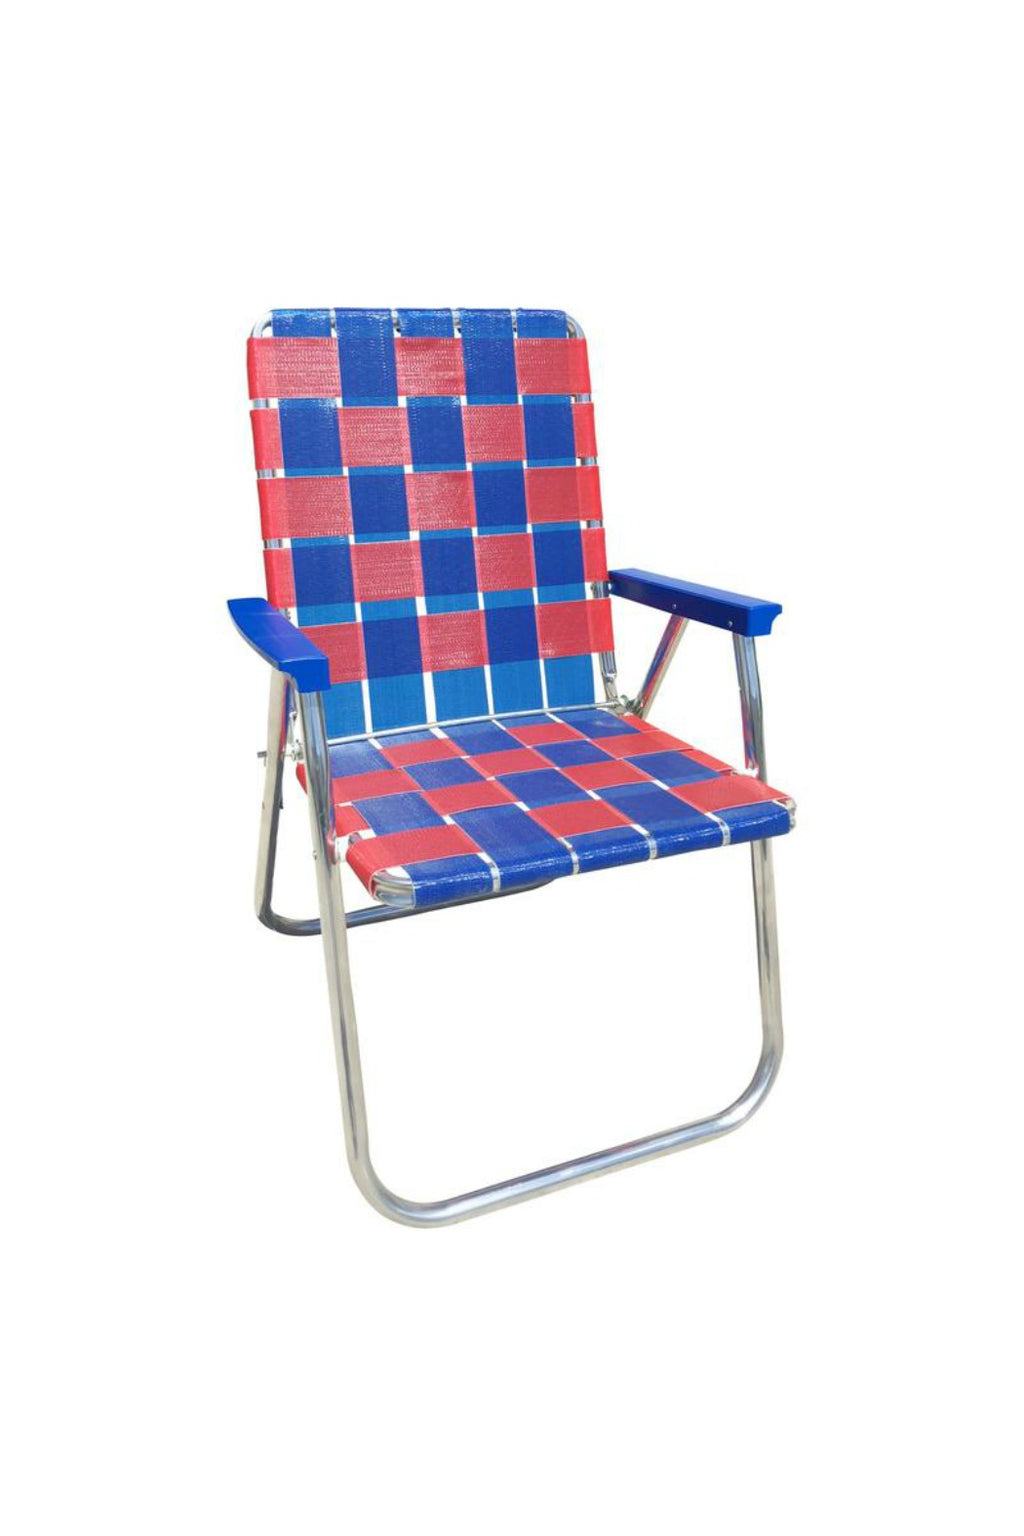 Classic Lawn Chair - Blue/Red Deluxe